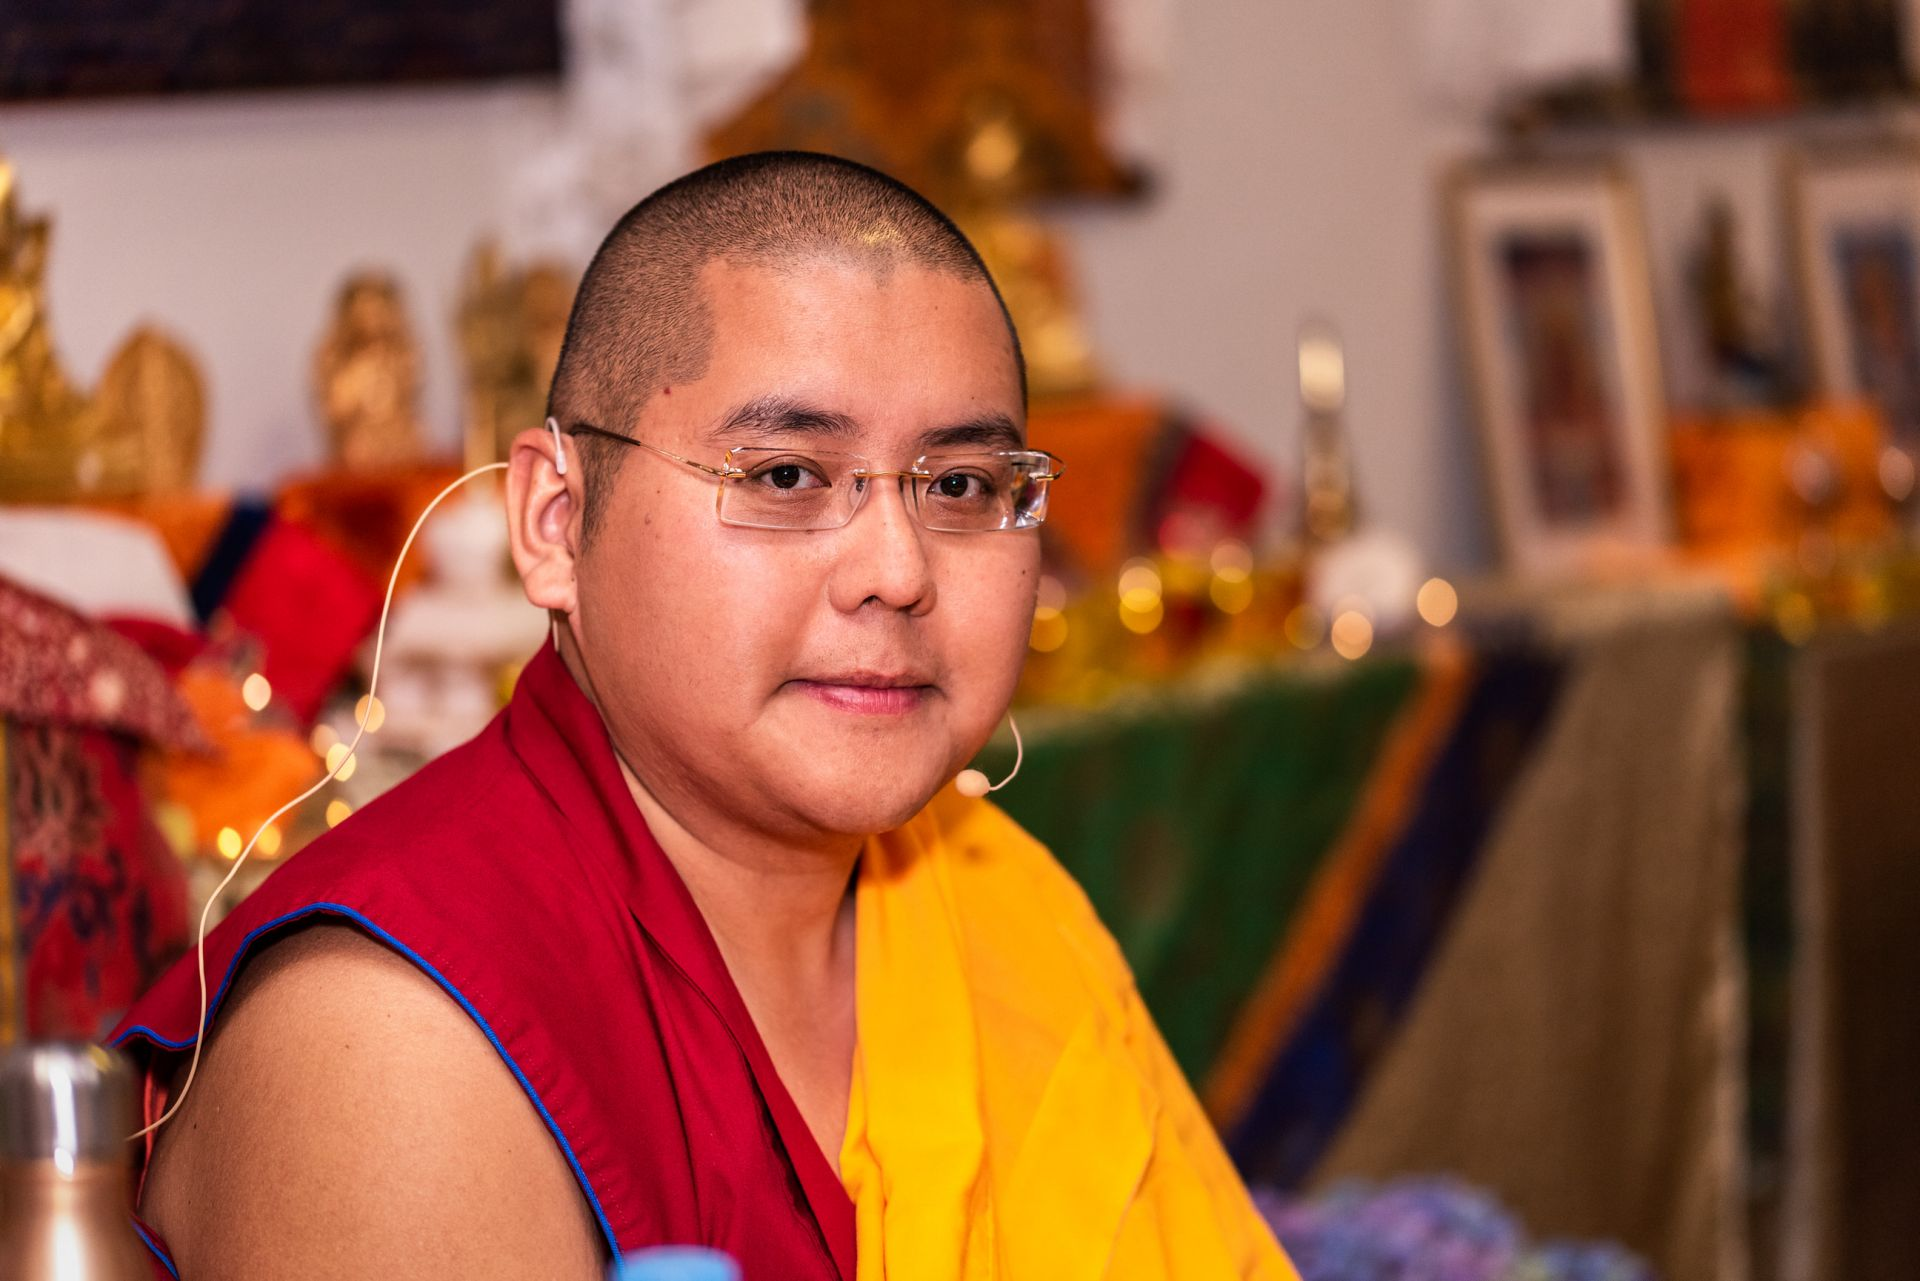 FPMT Hispana Welcomed His Eminence Ling Rinpoche to Spain